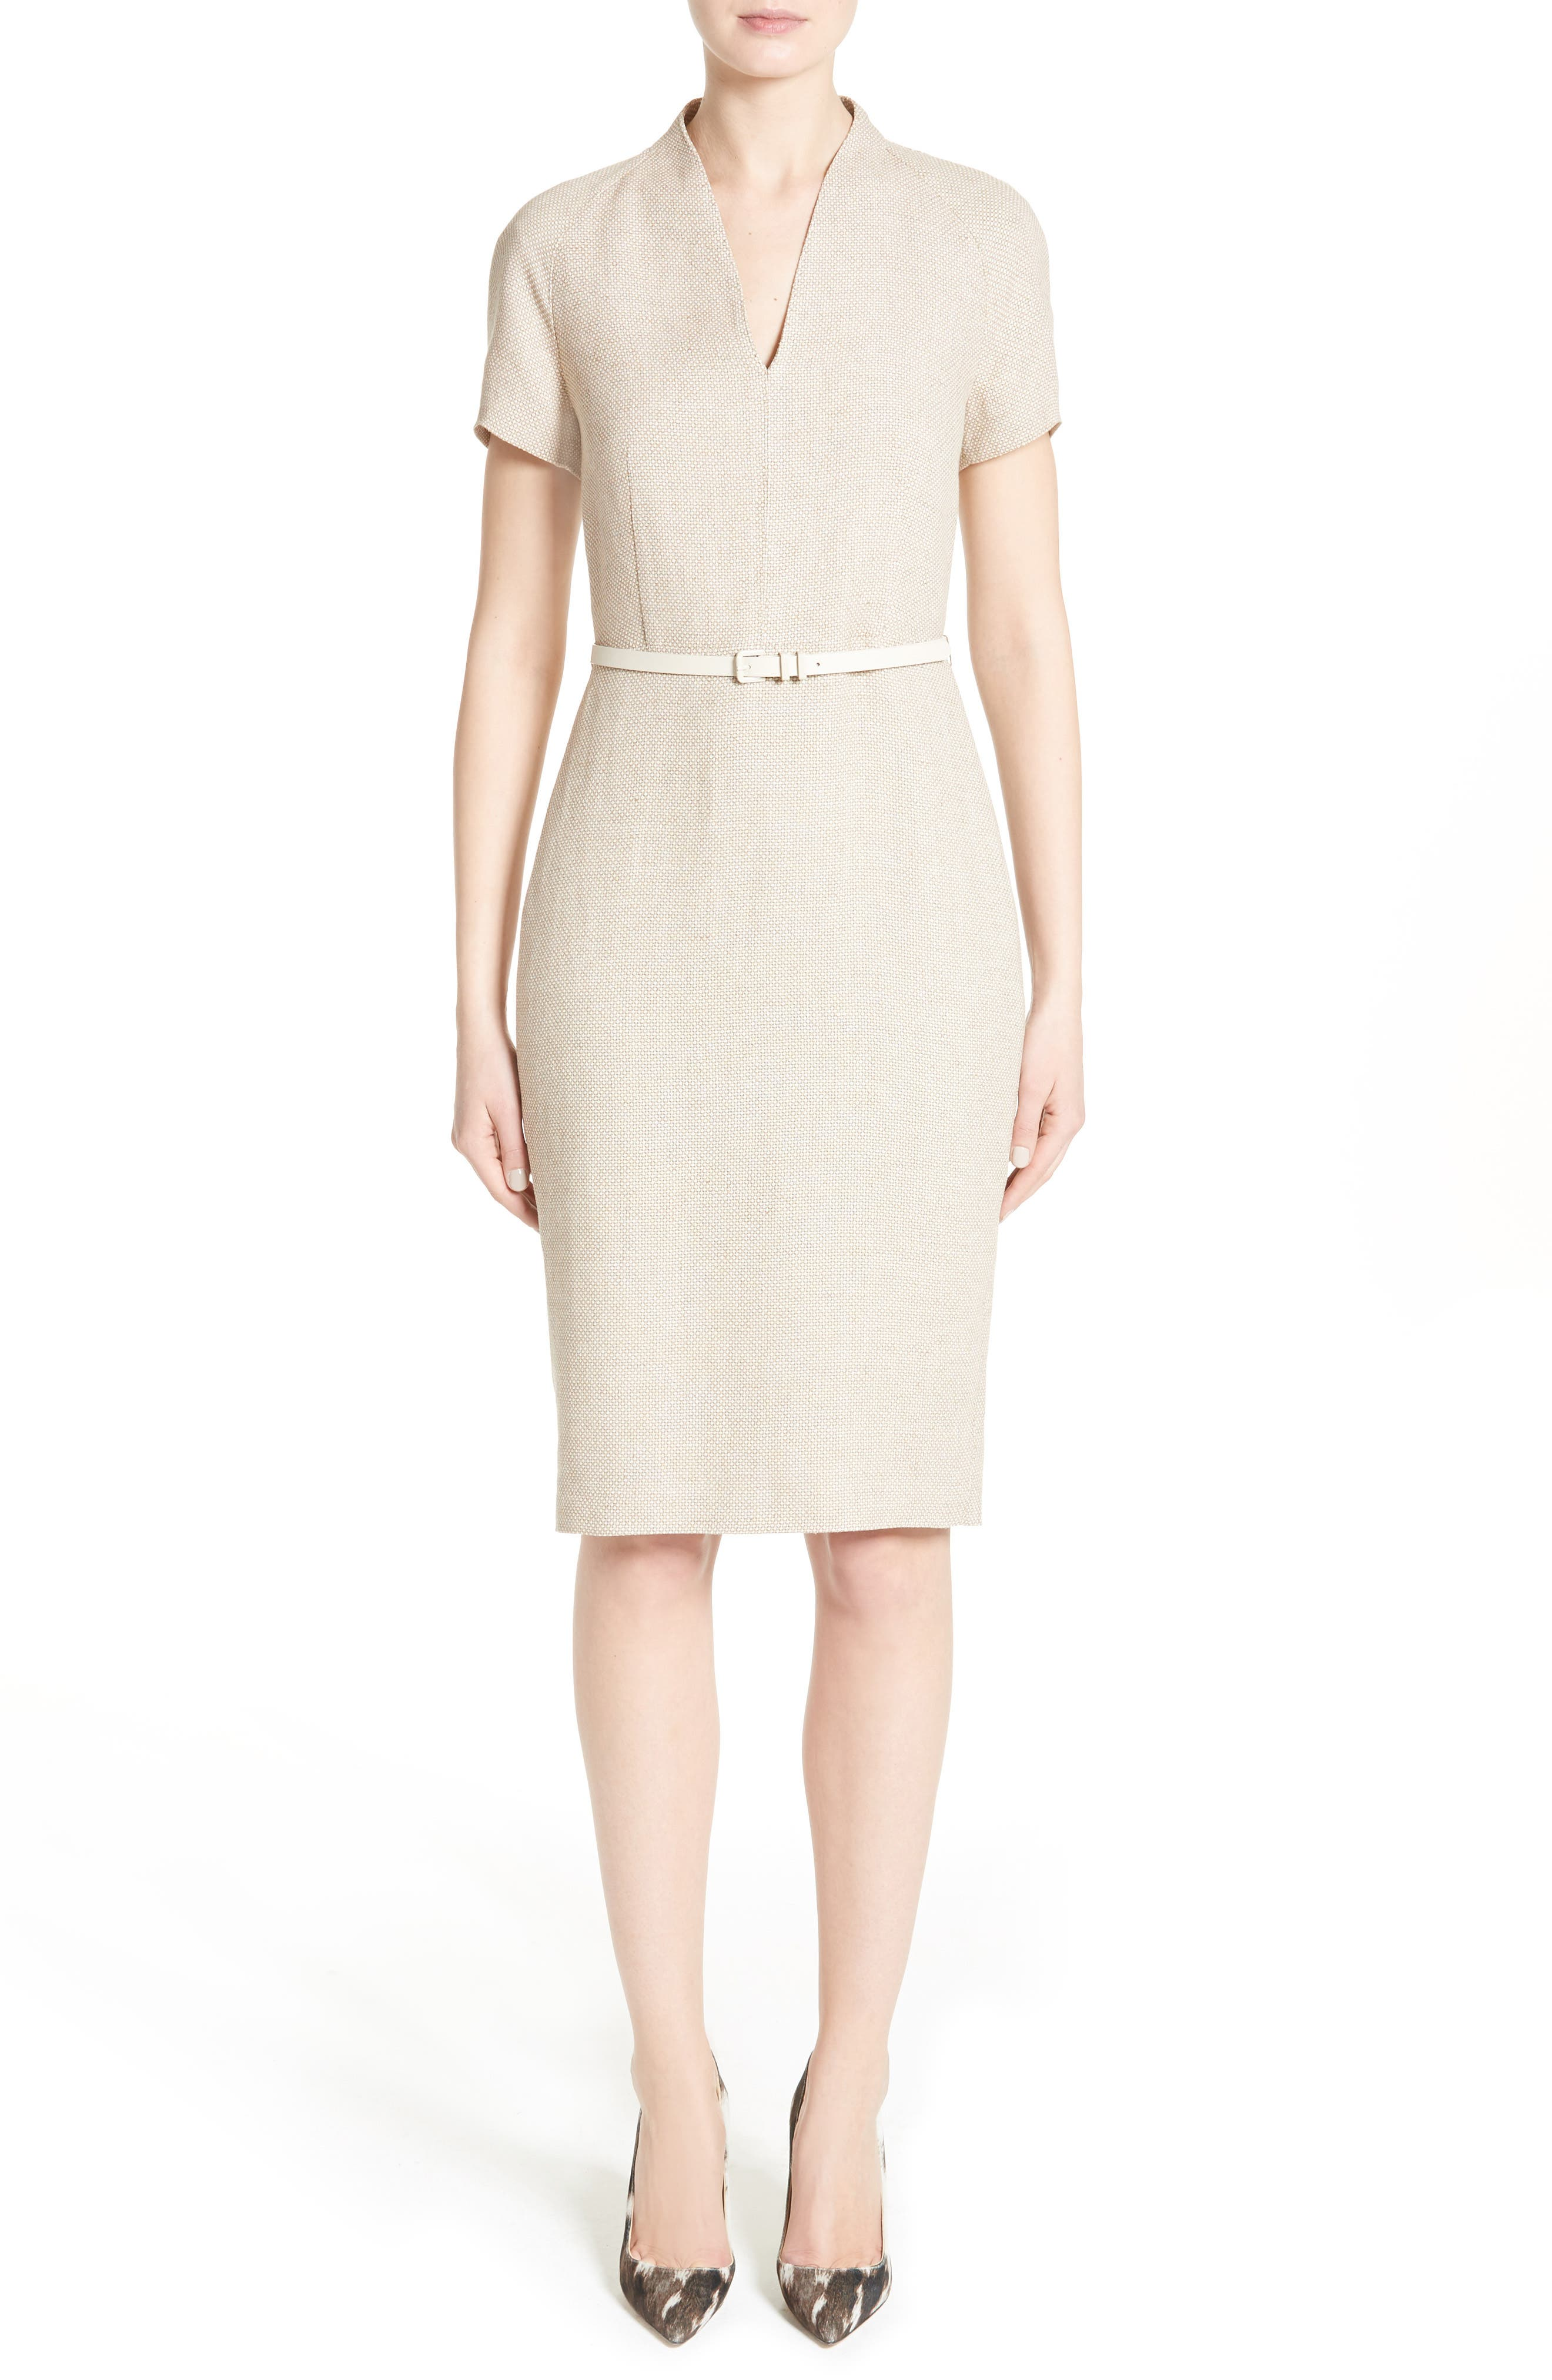 Main Image - Max Mara Azeglio Belted Linen Sheath Dress